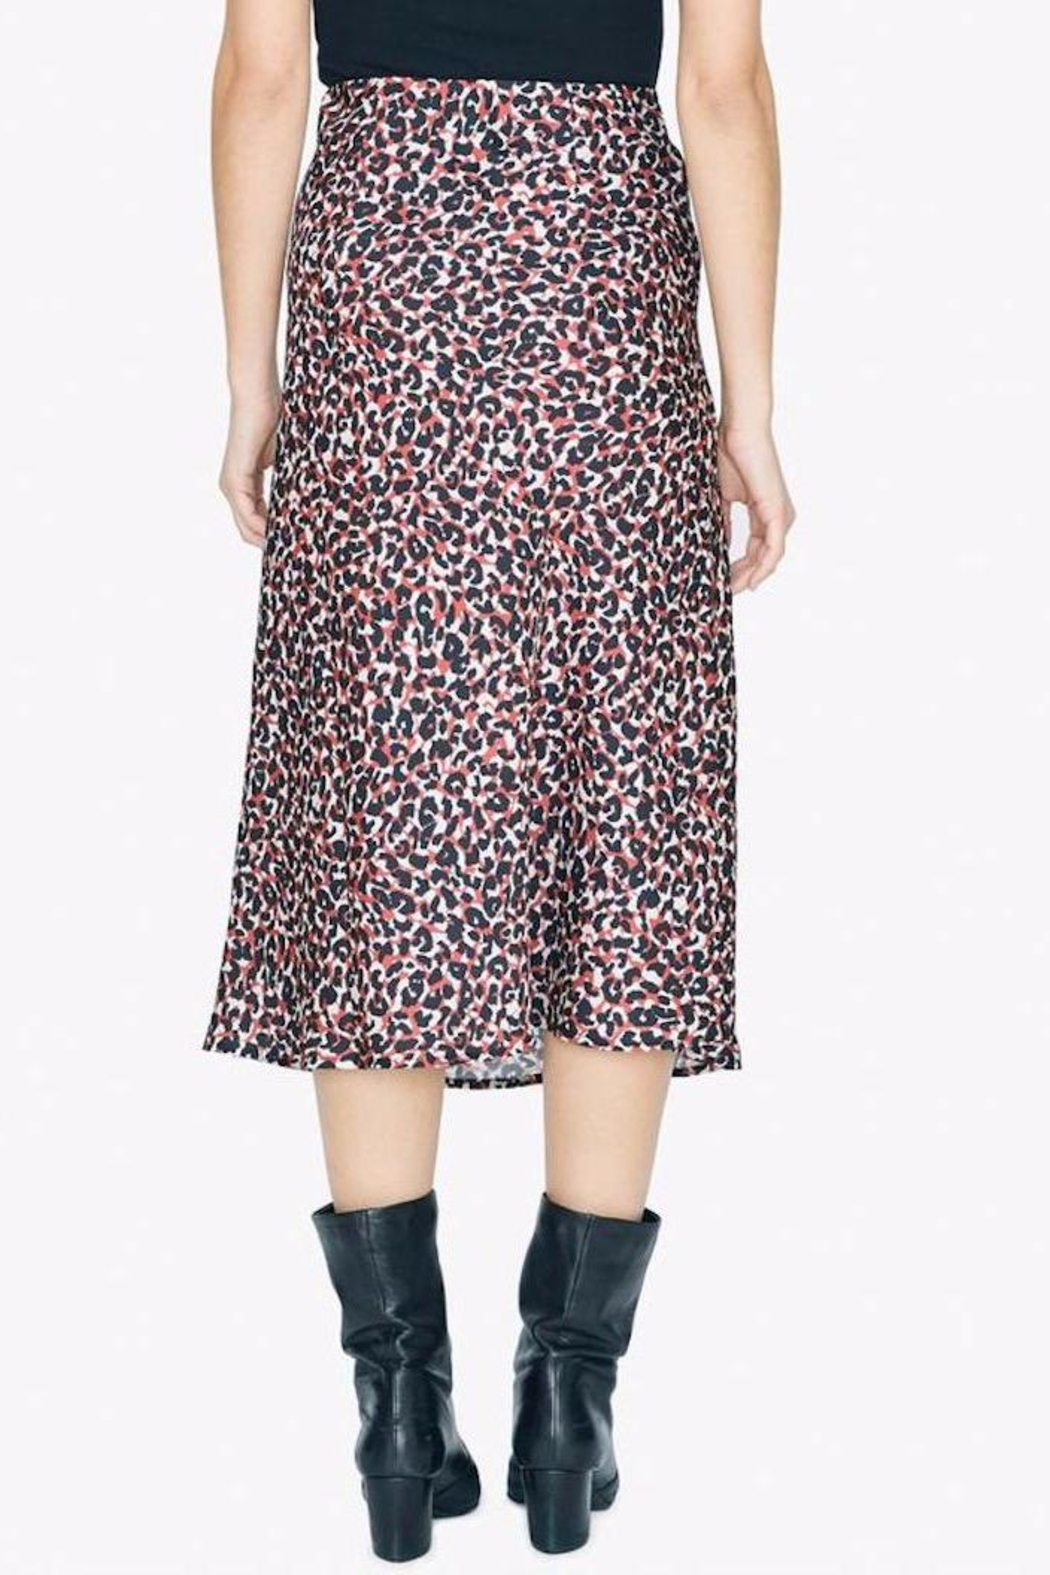 Sanctuary Cheetah Print Skirt - Front Full Image